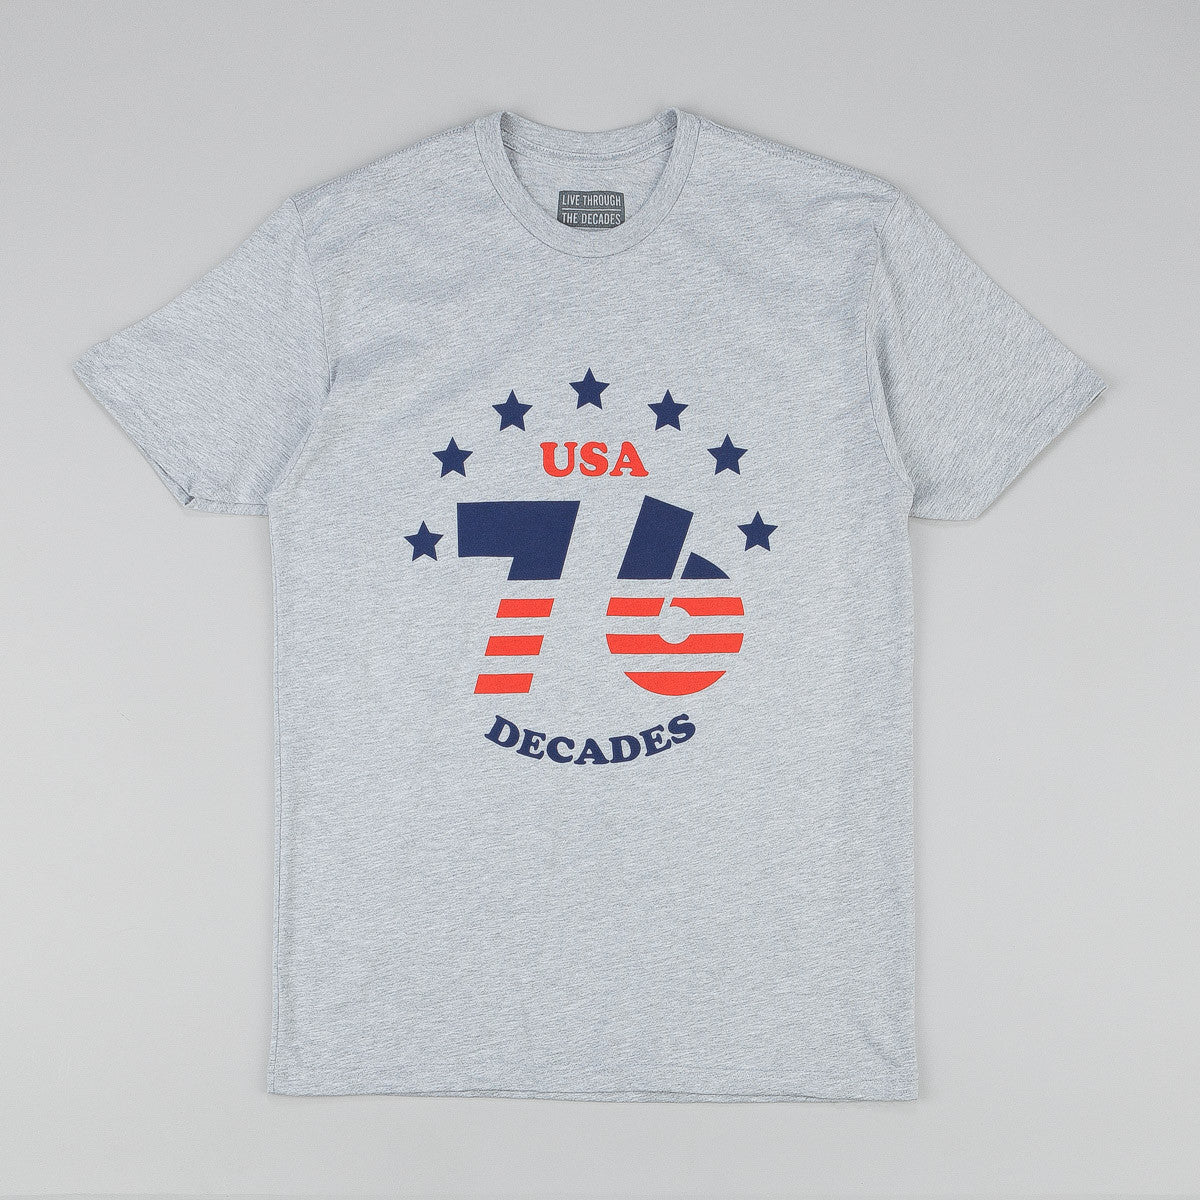 The Decades 'Bicentennial' T-Shirt